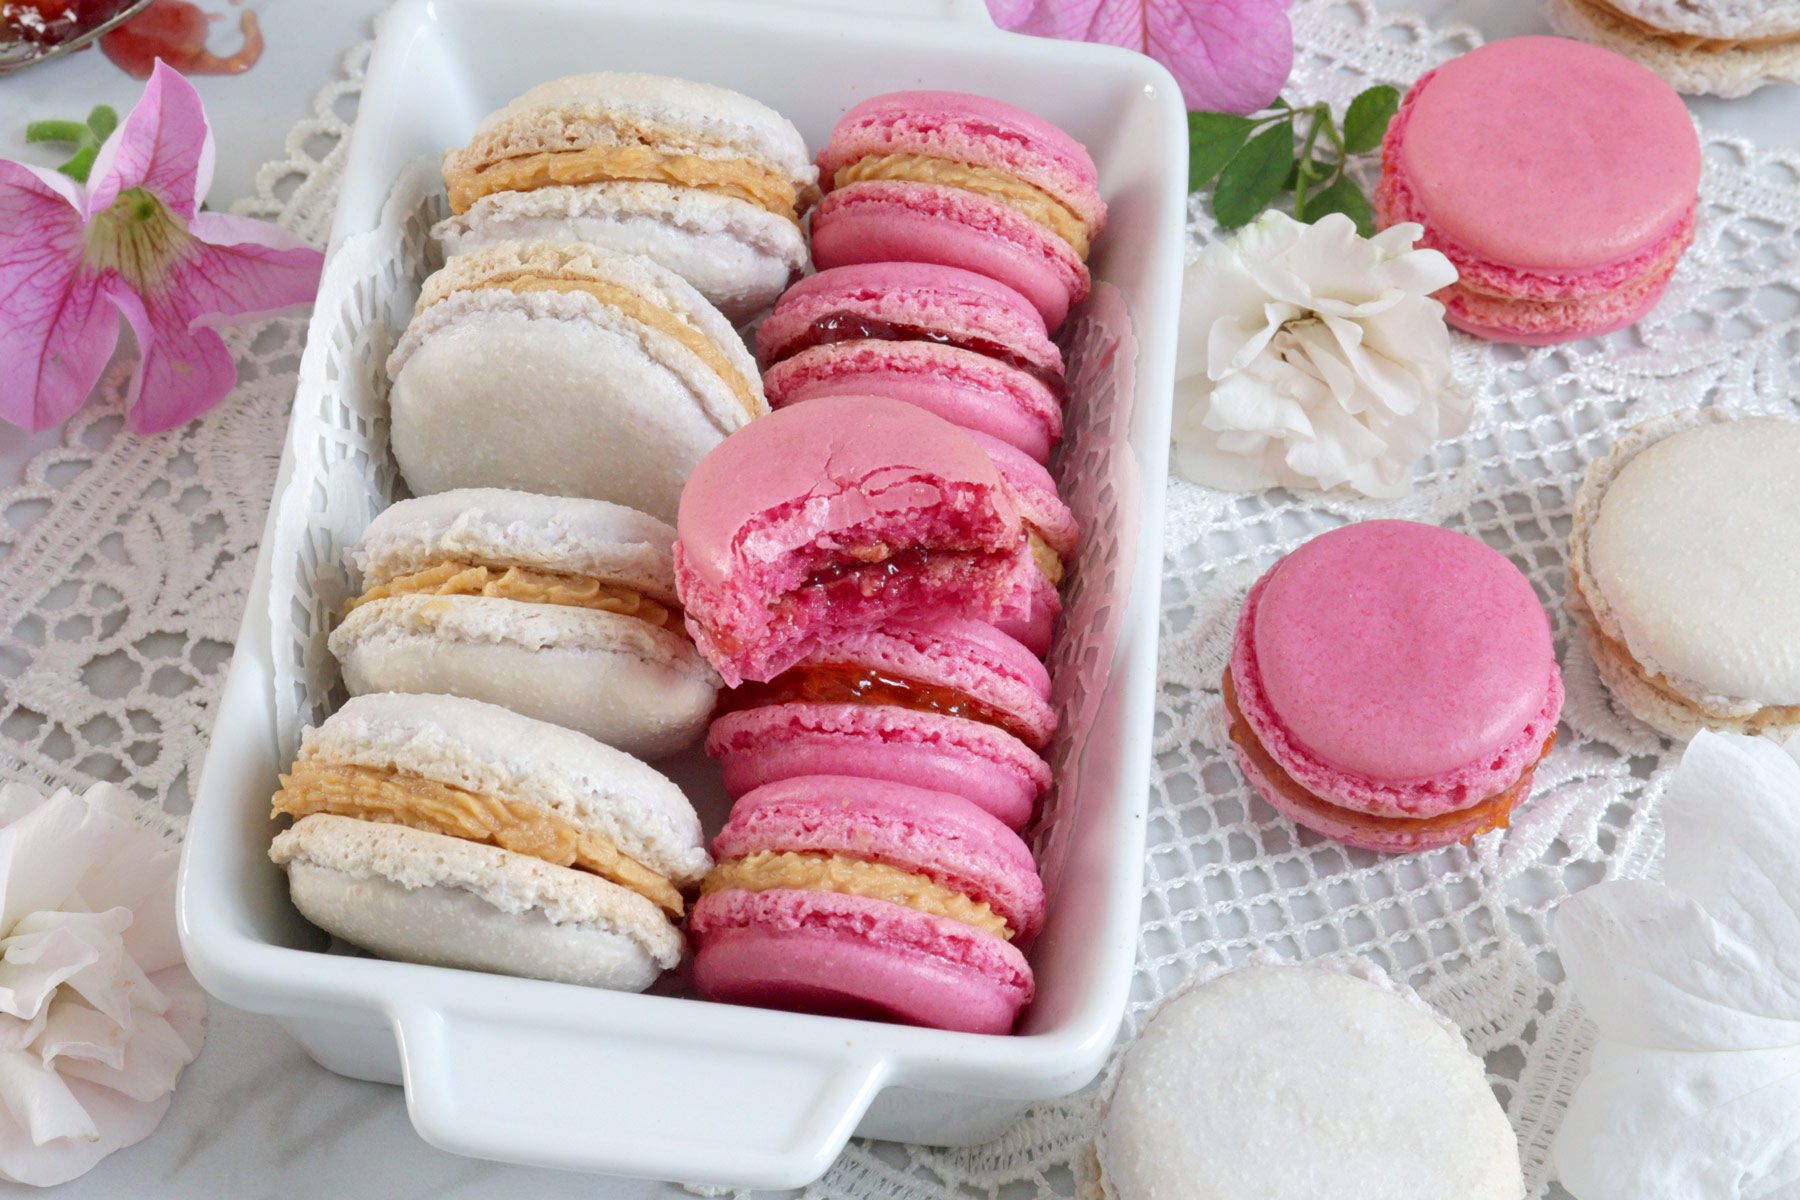 This french macaron recipe is less sweet than the usual and easier to make. With tips for those who would like to try making French Macarons for the first time. | www.foxyfolksy.com